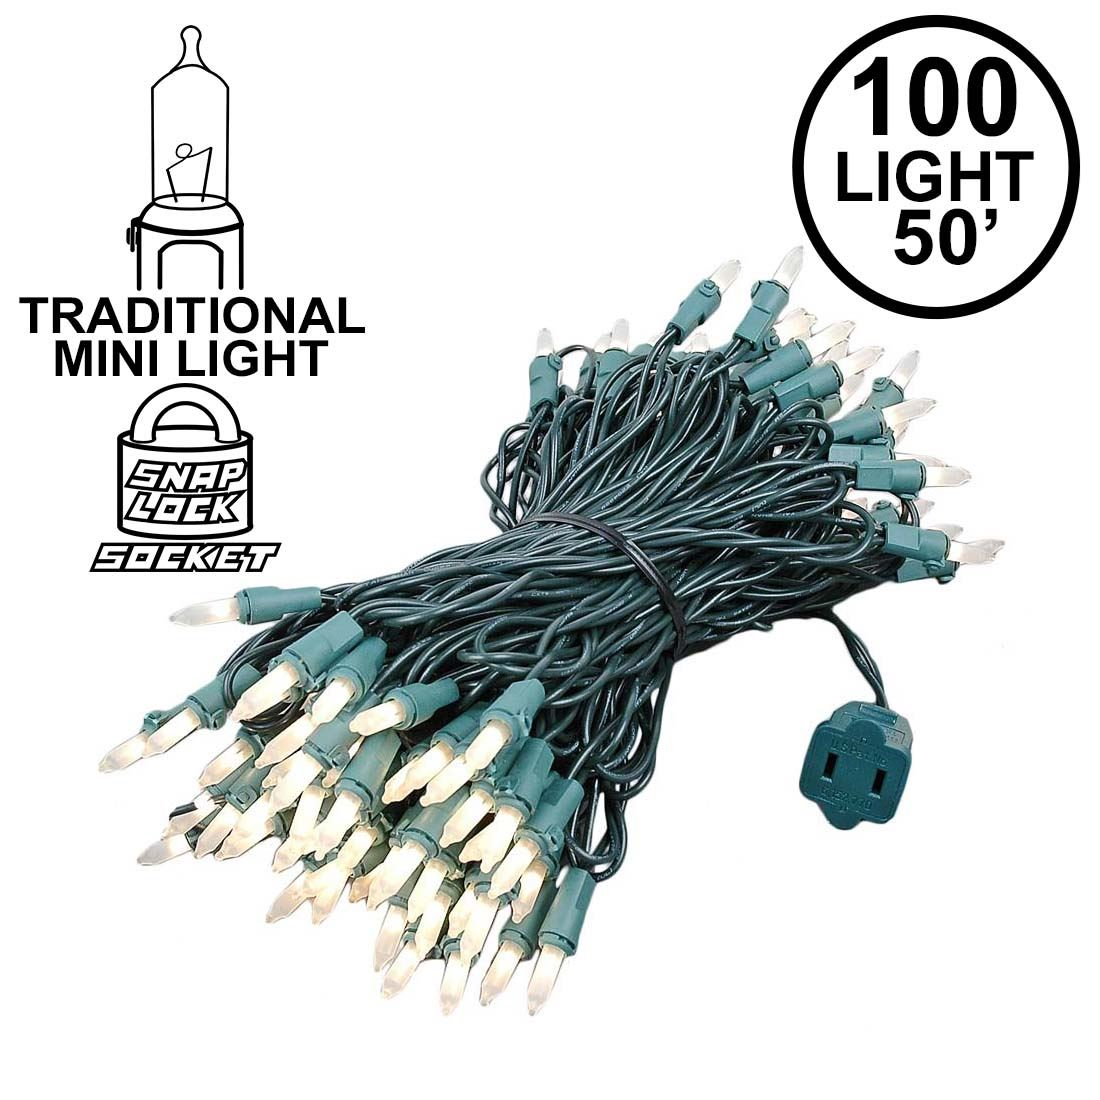 Picture of Frosted Christmas Mini Lights 100 Light 50 Feet Long on Green Wire